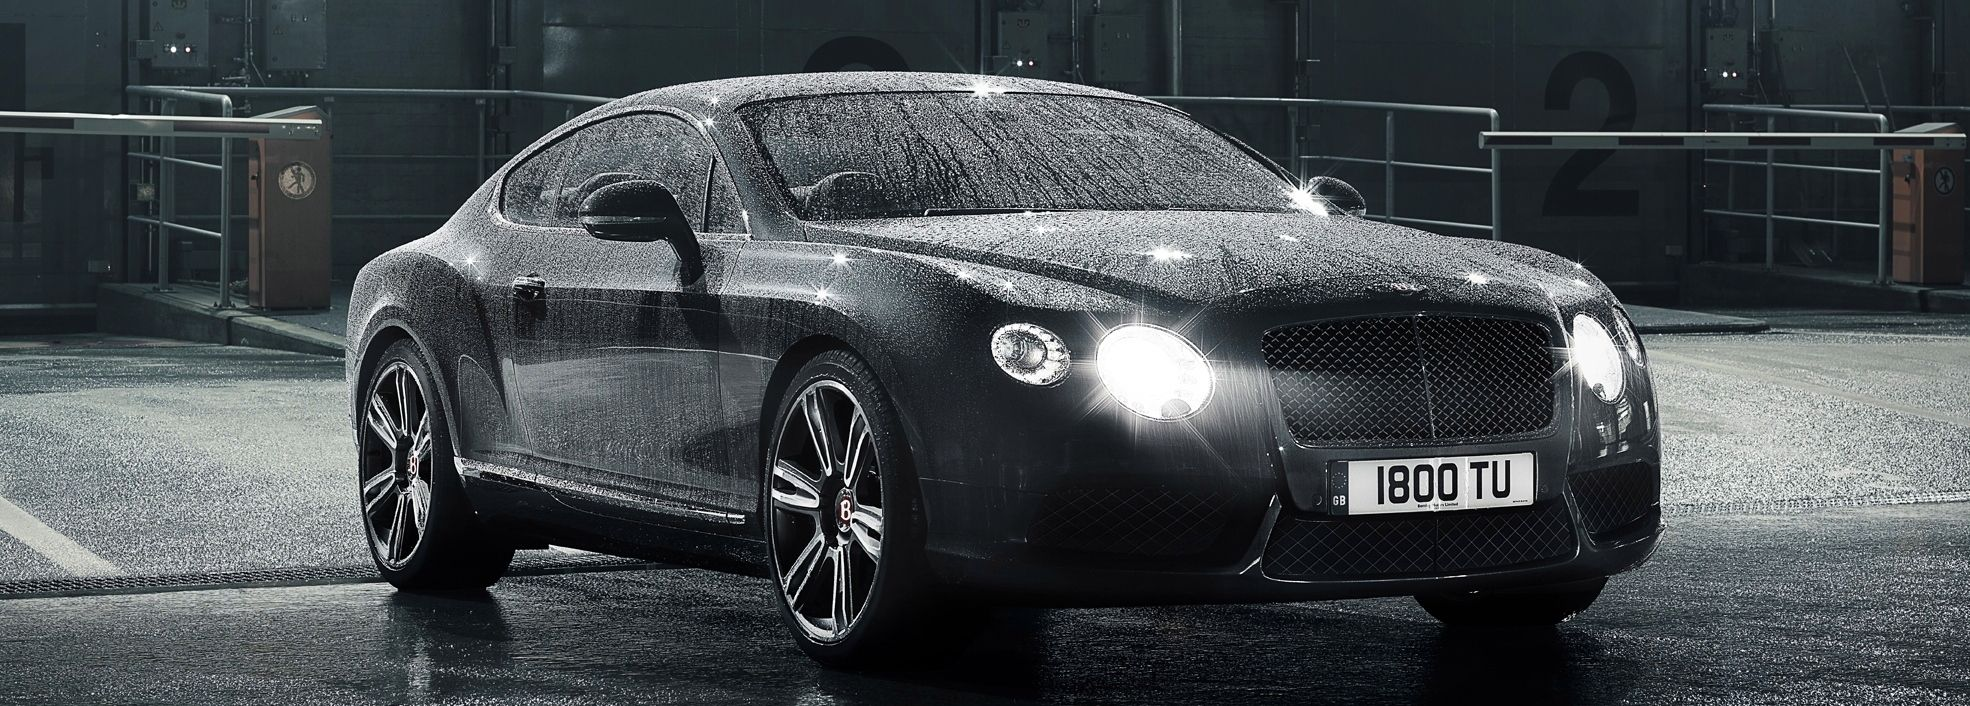 CarRevsDaily – 2014 Bentley Continental GTC V8 and V8 S 39